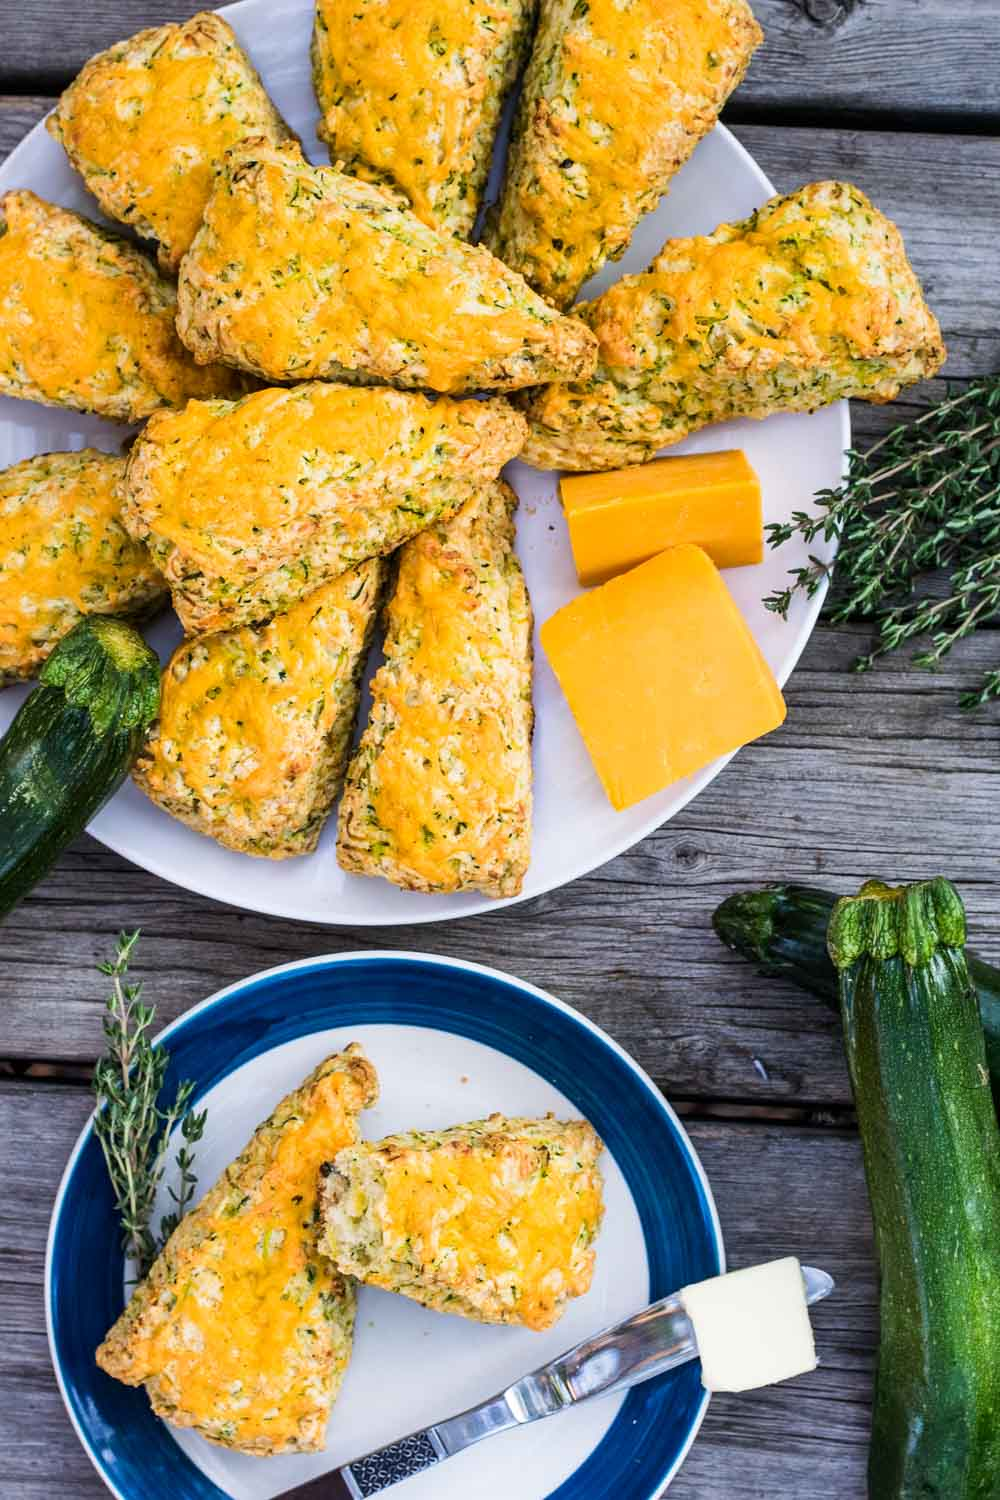 Delicious scones stuffed full of zucchini - so healthy! - and sharp cheddar, with a sprinkle of fresh thyme for good measure. Pop them in the oven tonight!